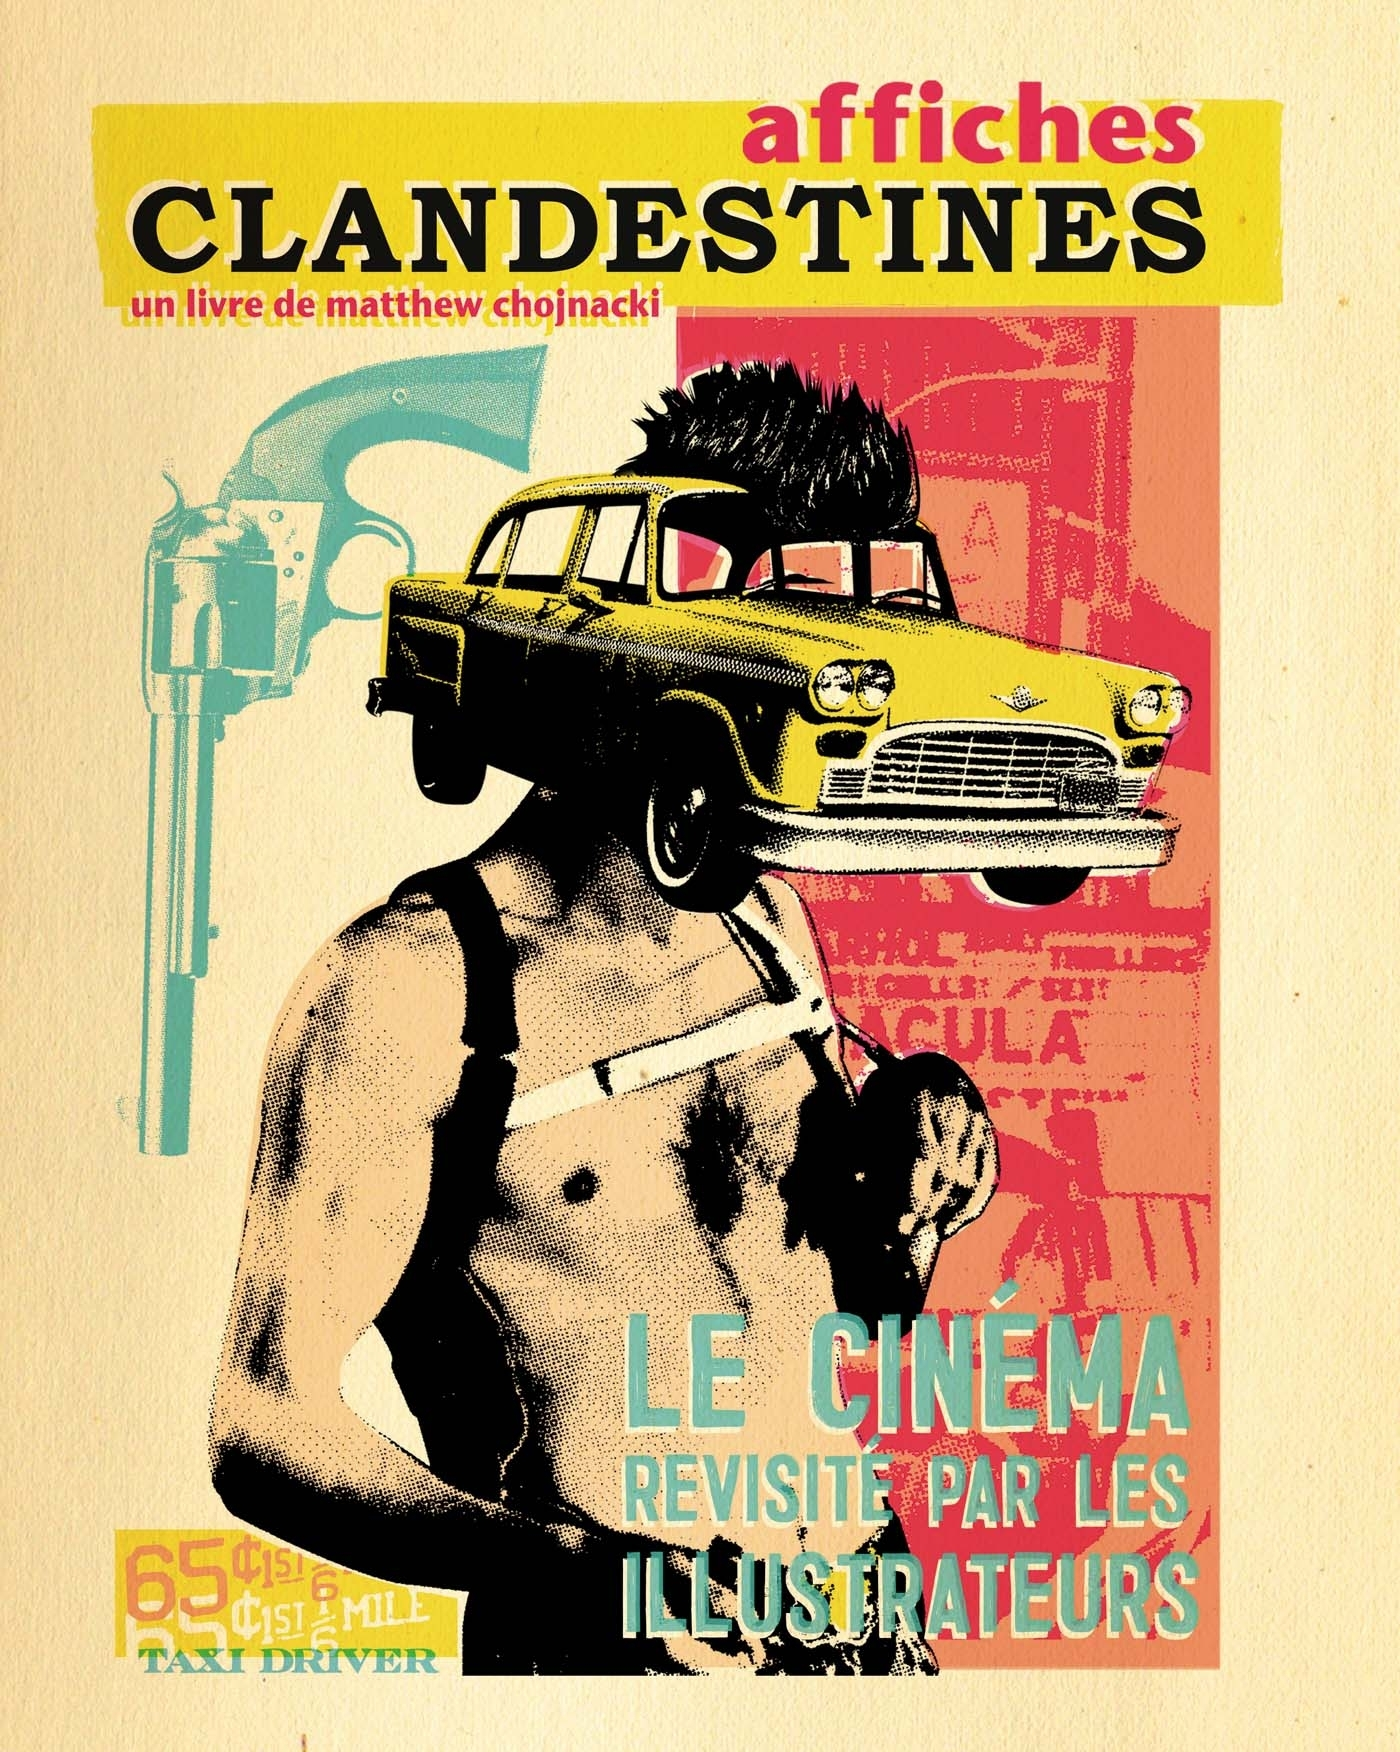 AFFICHES CLANDESTINES - LE CINEMA REVISITE PAR LES ILLUSTRATEURS